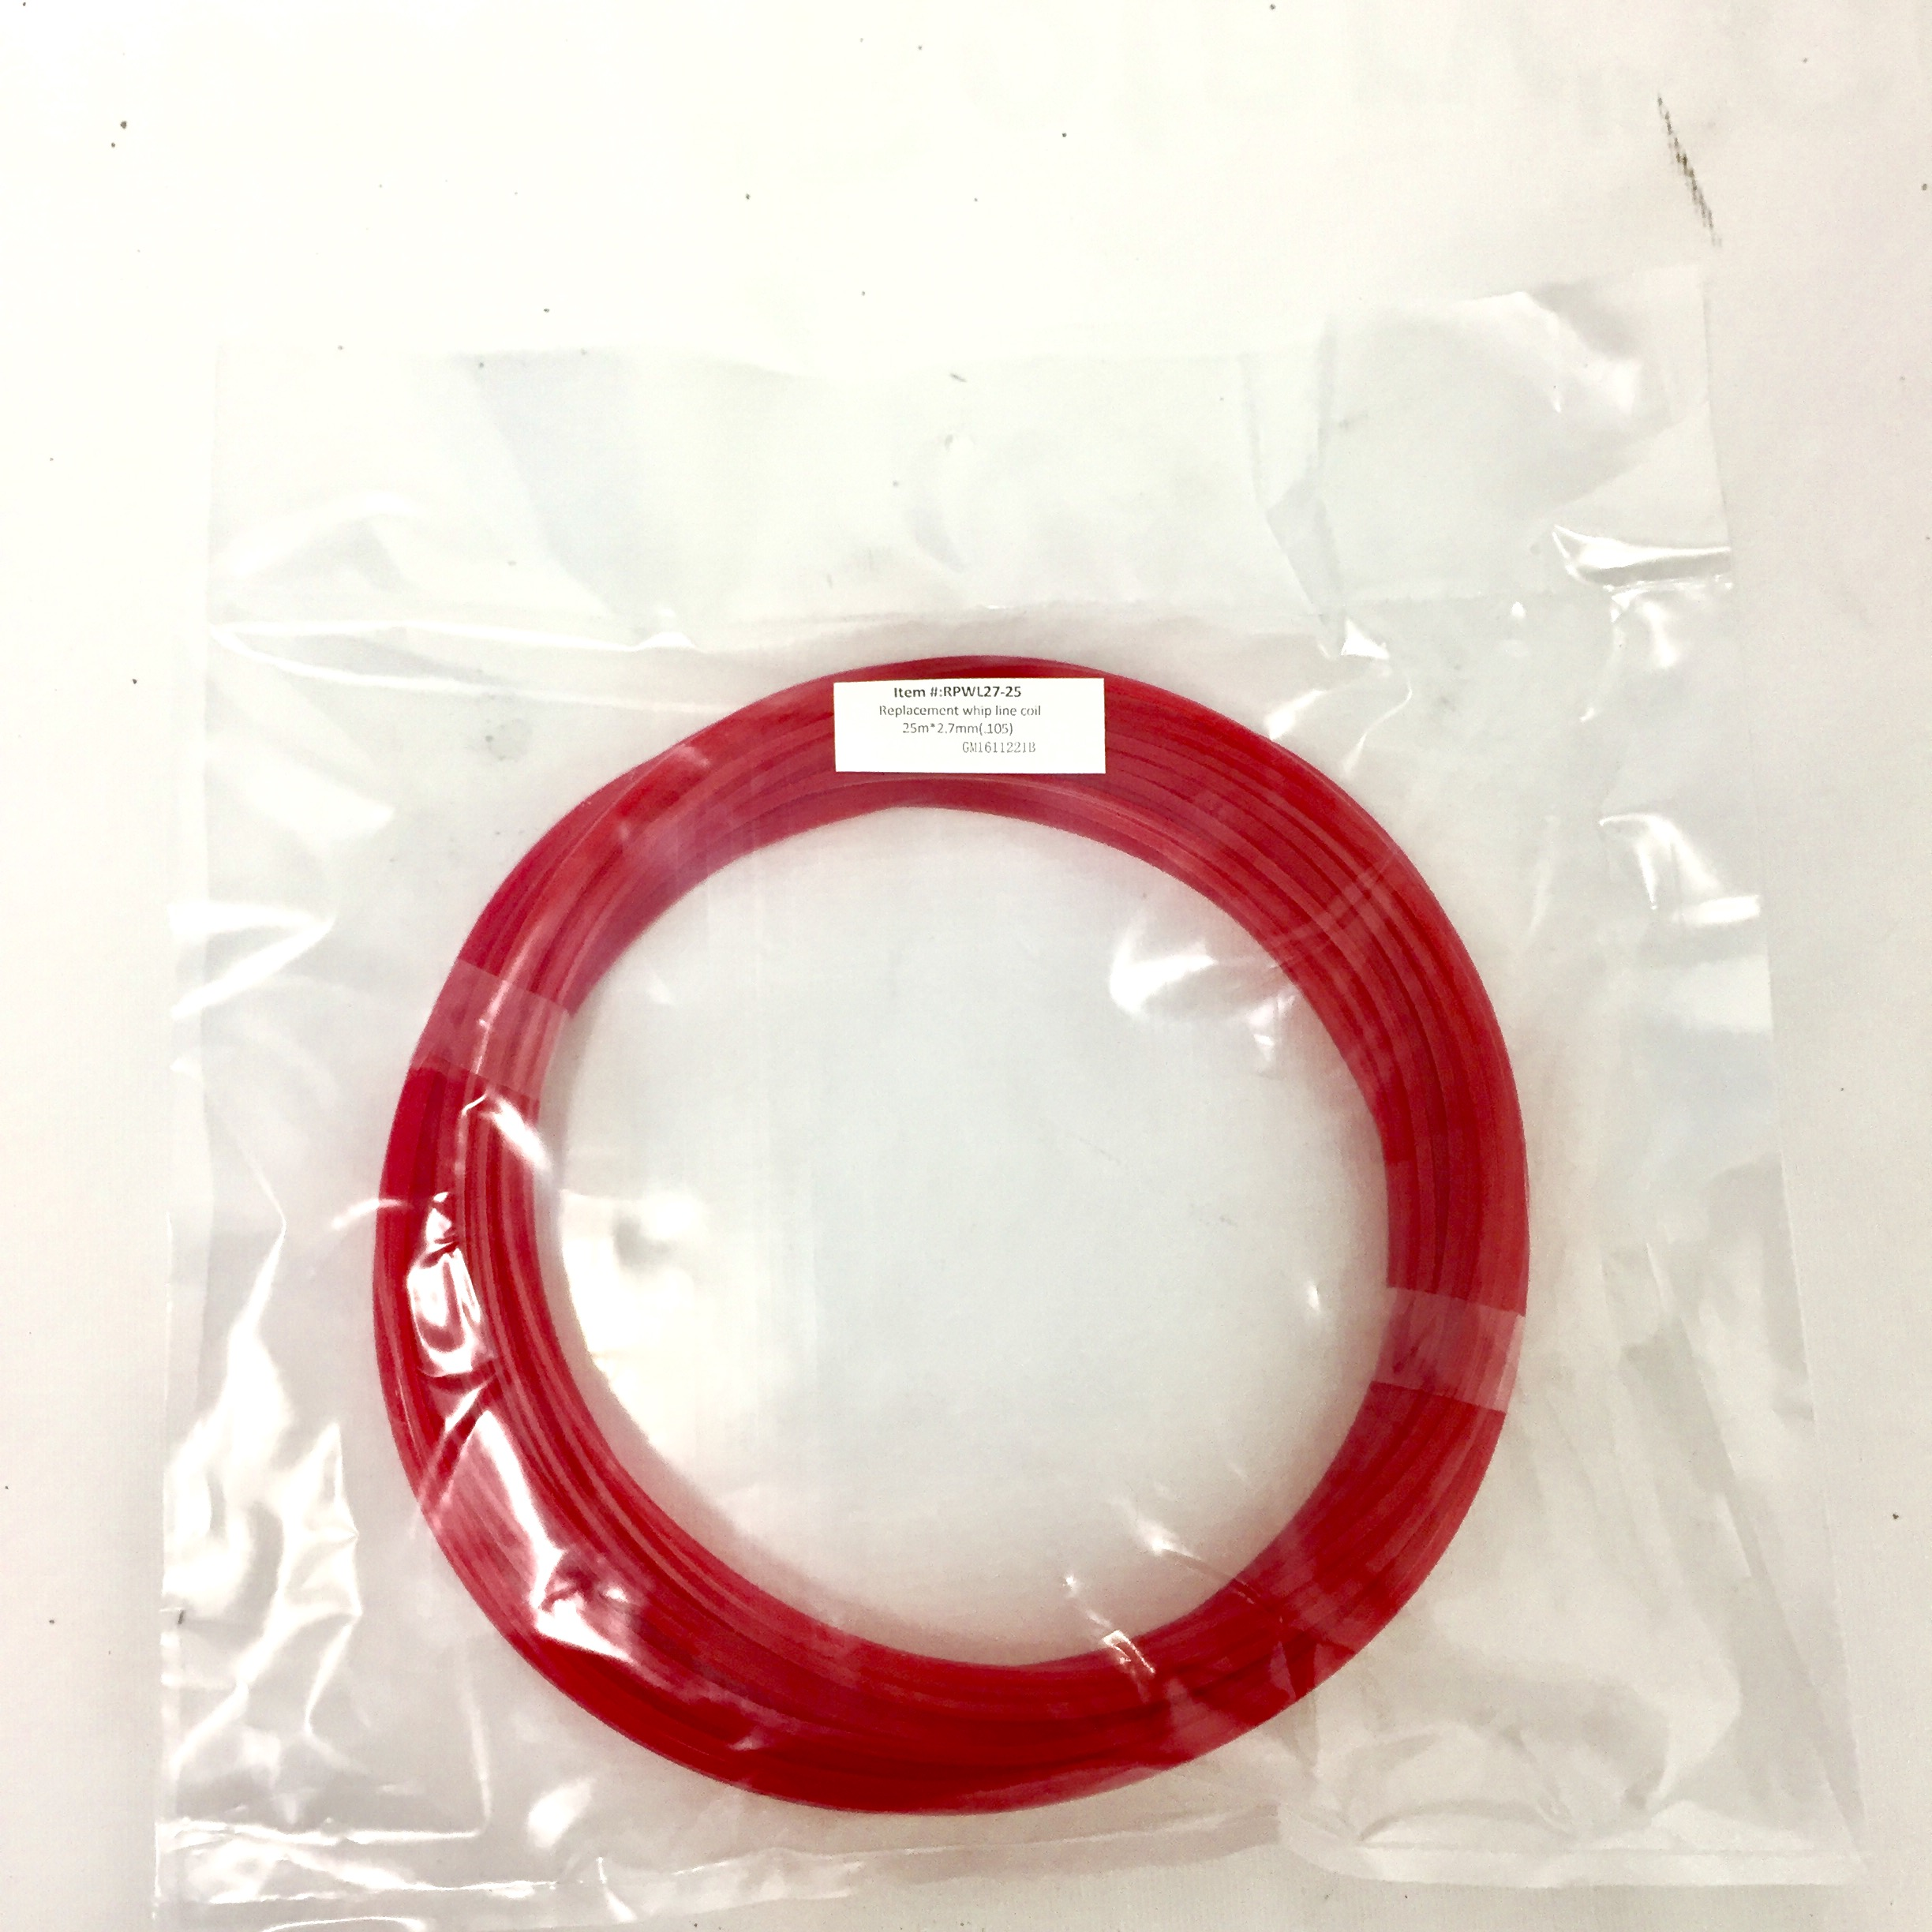 Snaplok 25M x 2.7mm Co-polymer Whip Line Reel - Square